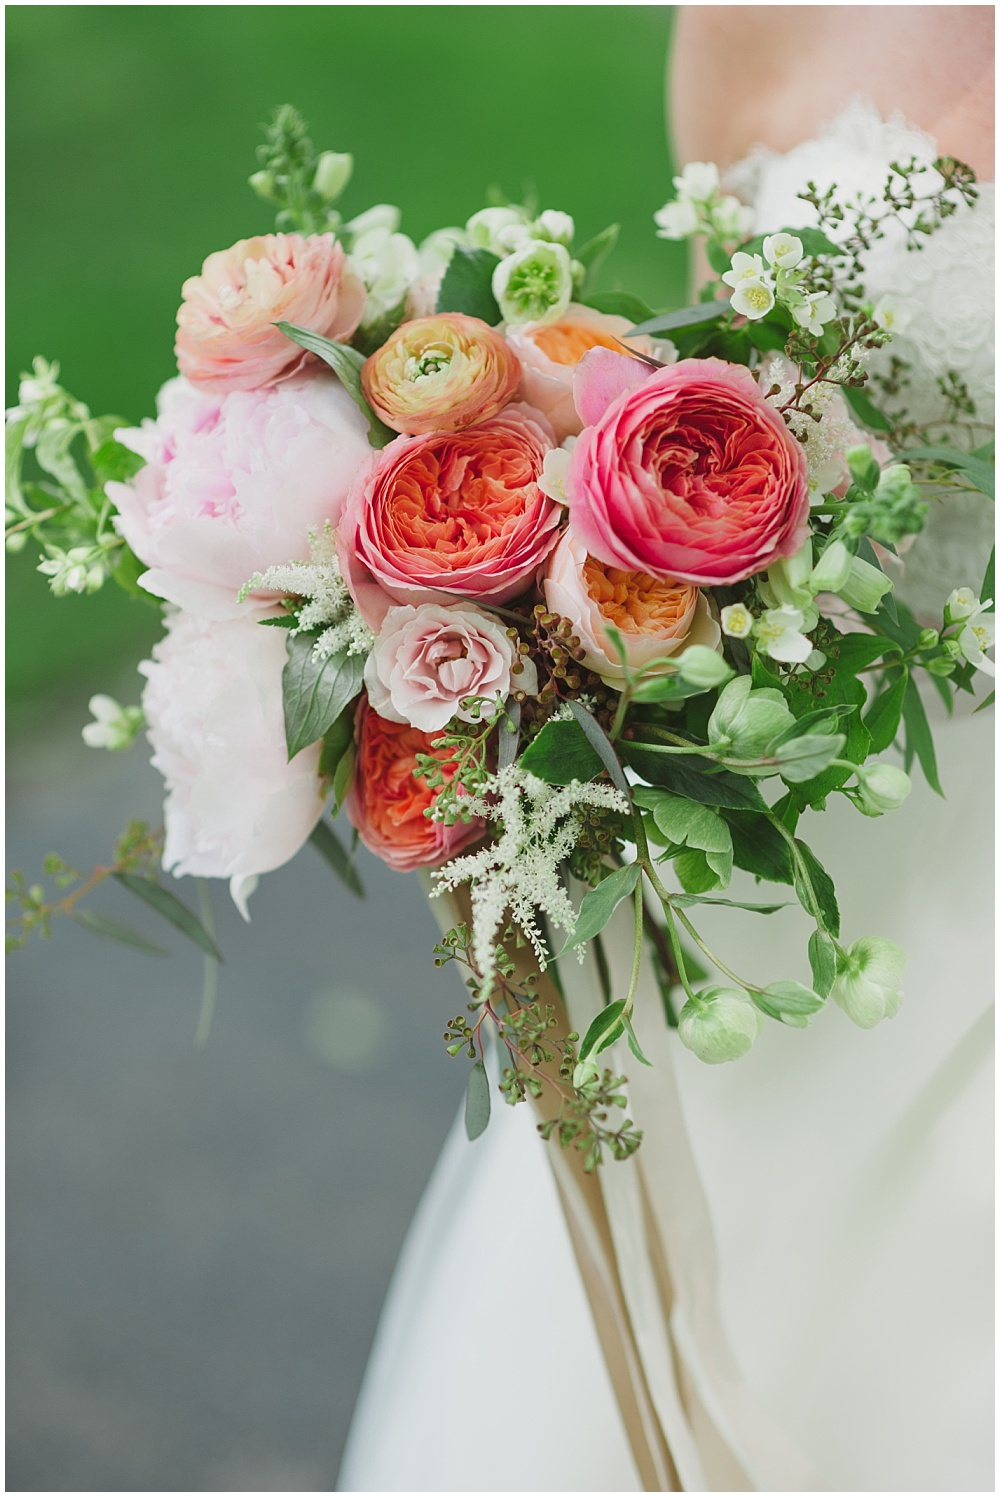 Blush, pink and green bridal bouquet with silk ribbon | Ritz Charles Garden Pavilion Wedding by Stacy Able Photography & Jessica Dum Wedding Coordination